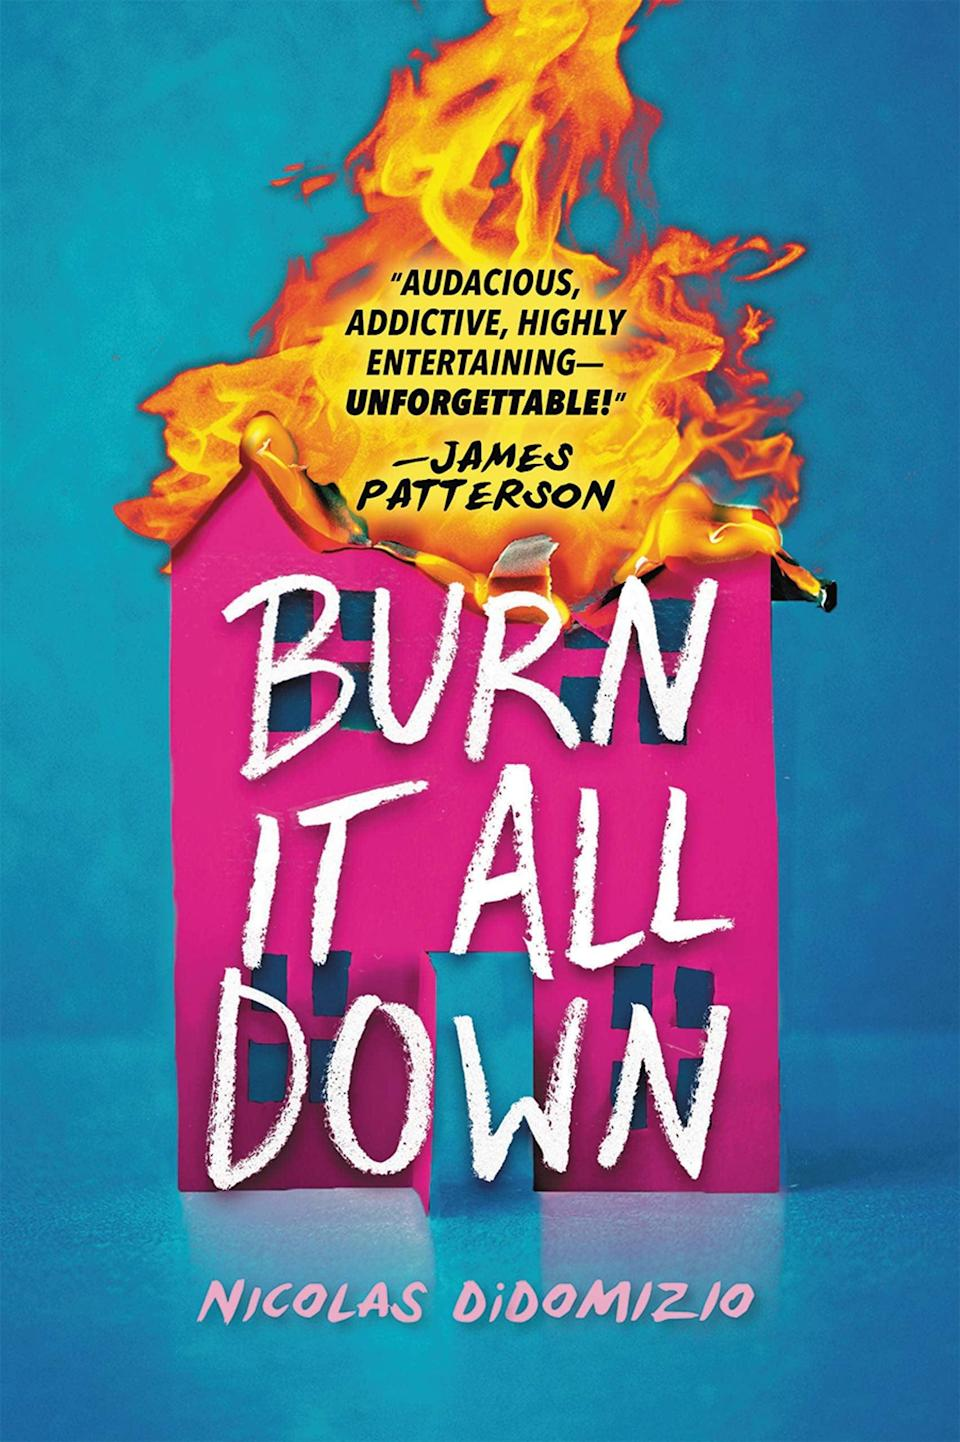 <p>Nicolas DiDomizio's <span><strong>Burn It All Down</strong></span> is a wild, delightful revenge thriller about a mother and son who both have some serious growing up to do. After 18-year-old Joey Rossi discovers his boyfriend has been cheating on him for 10 months, he's consumed by rage. Unfortunately, so is his 34-year-old mom, Gia, who is dealing with romance troubles of her own. When Gia and Joey redirect their anger into actual criminal activities, they're left with no place to turn but to Gia's ex Marco. </p> <p><em>Out May 25</em></p>